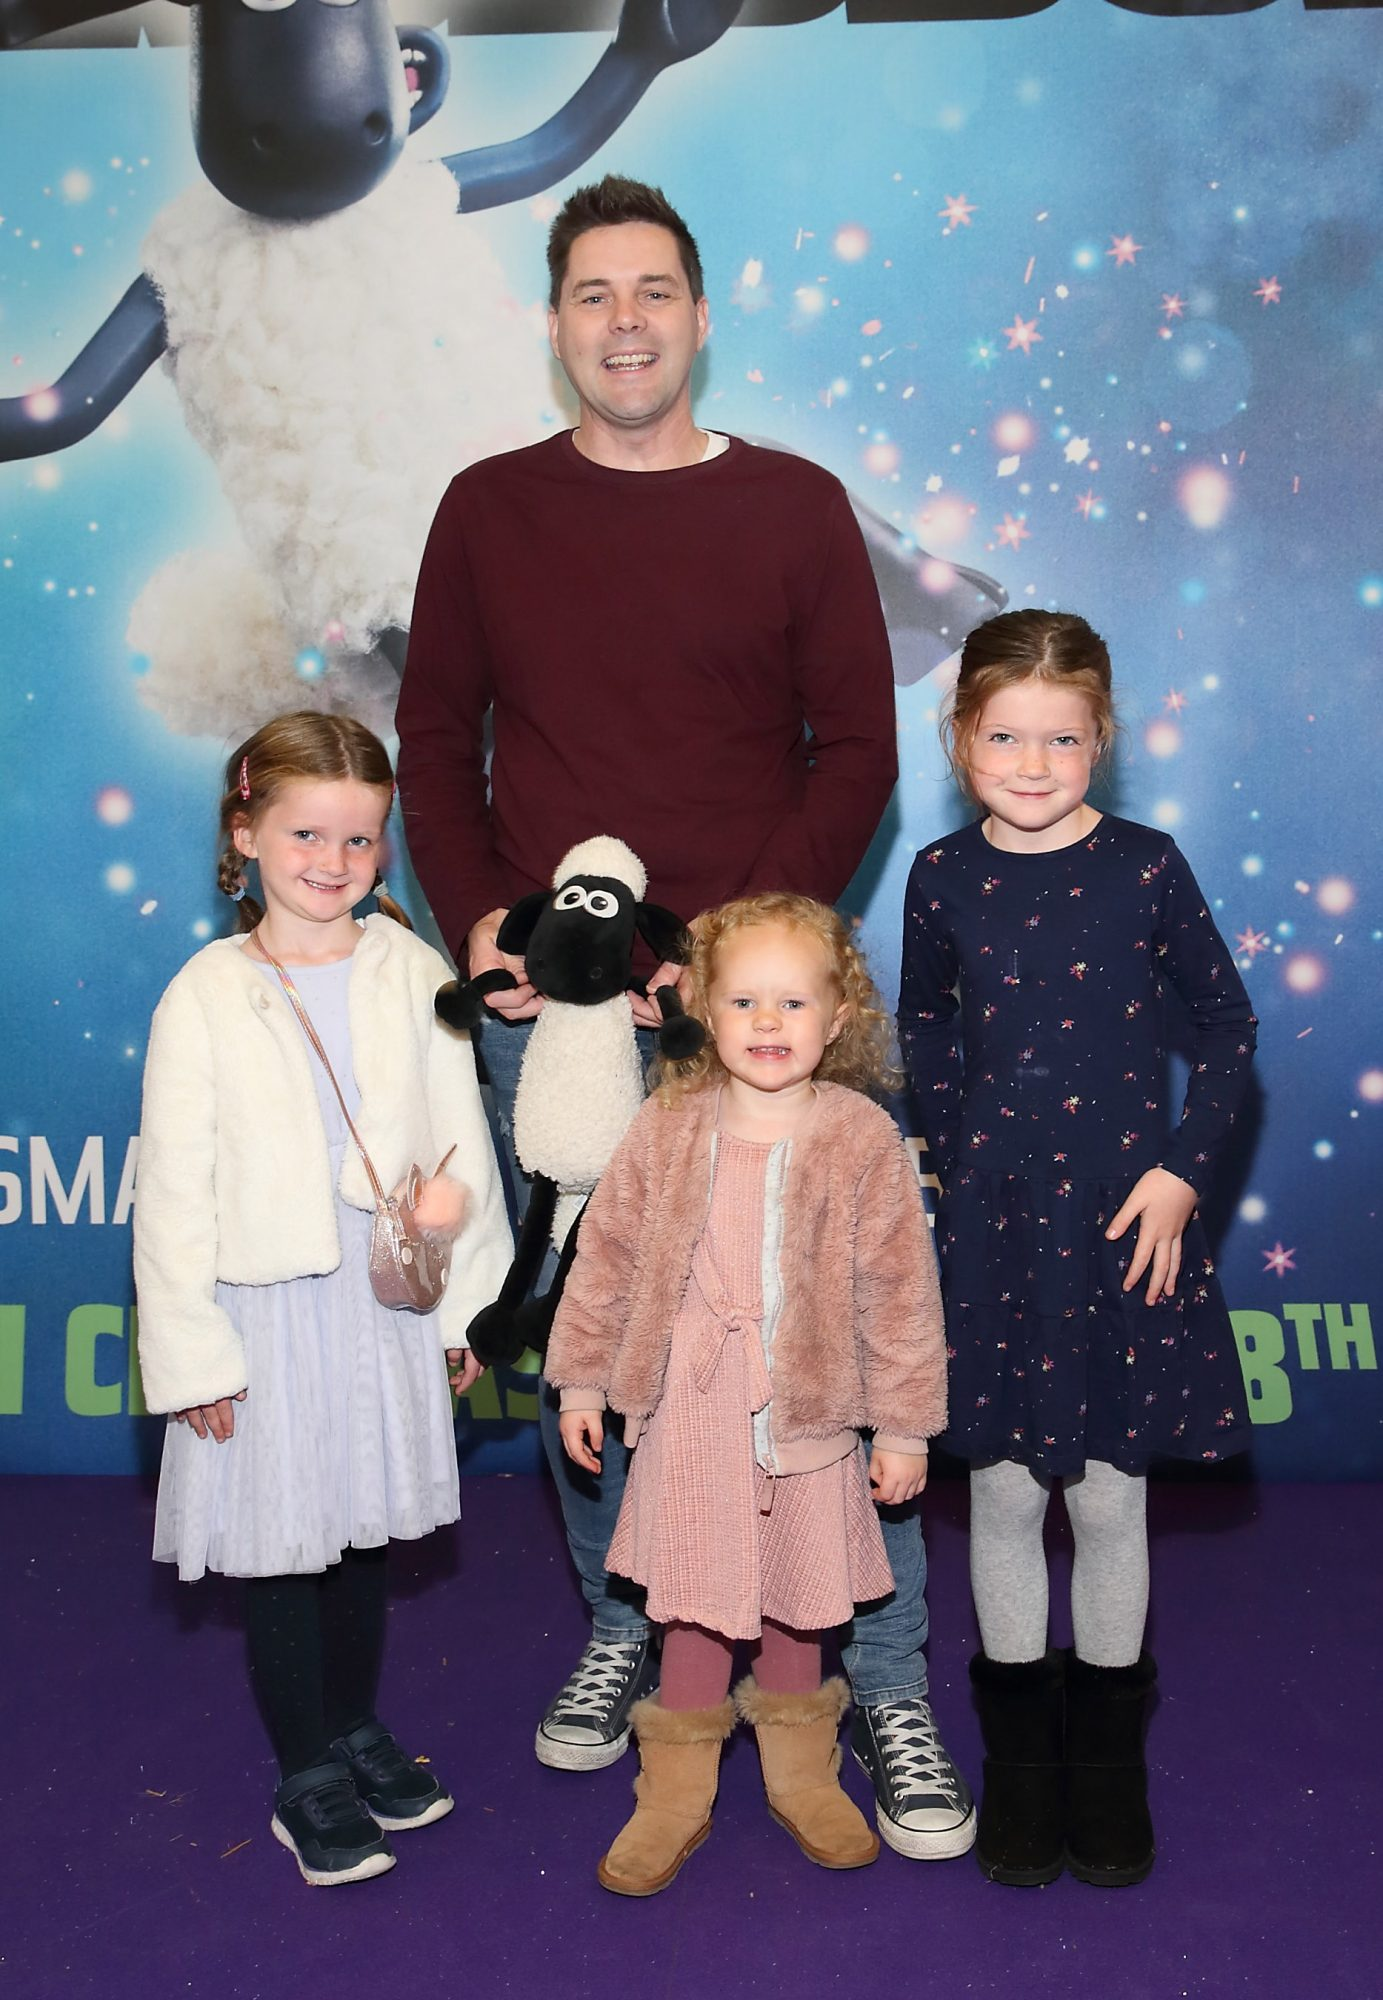 Marty Miller, Ella Prenty, Eleanor Miller and Amy Miller  at the special preview screening of Shaun the Sheep at the Odeon Cinema In Point Square, Dublin.  Pic: Brian McEvoy Photography